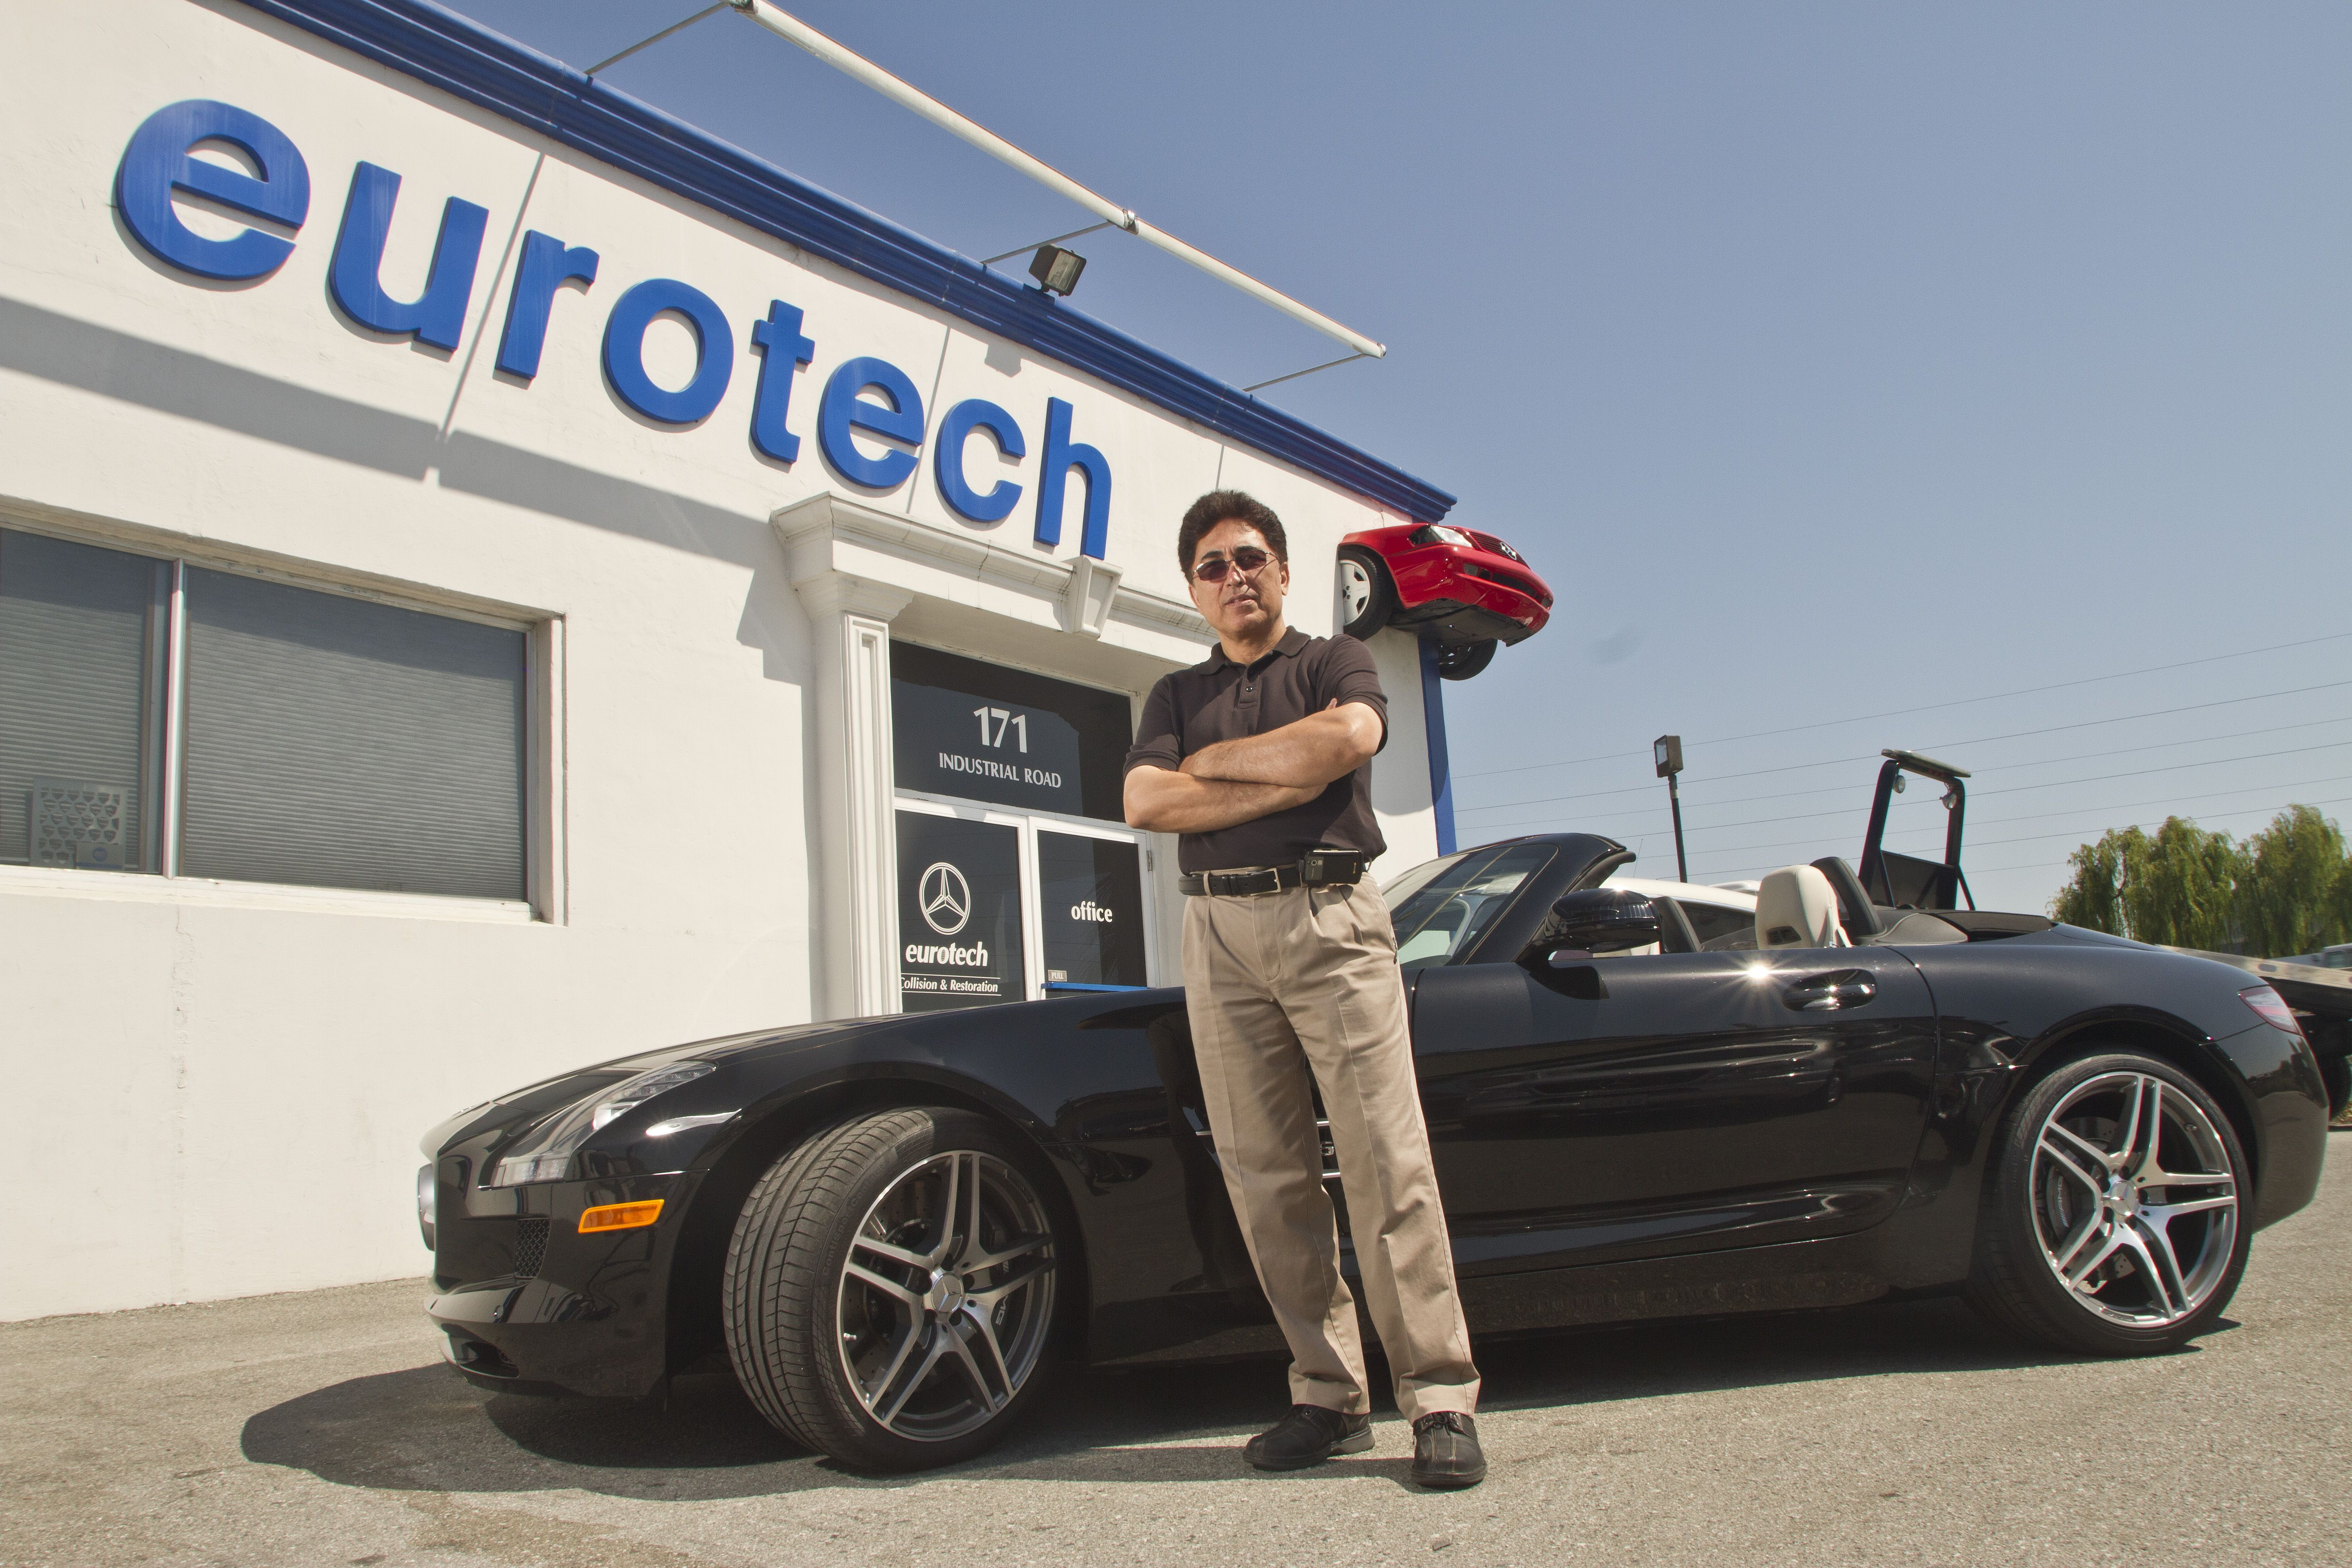 Having several years' experience as operation manager in Mercedes Benz USA, Michael Keynejad established Eurotech, a complete Auto Care facility certified by Mercedes-Benz of North America with the help of Heinz Gunther back in 80s. Mike has been built up a trust relationship with his clients and today Eurotech is proud to provide complete auto care and collision services for all makes and models of cars, including those requiring the highest level of quality workmanship such as…